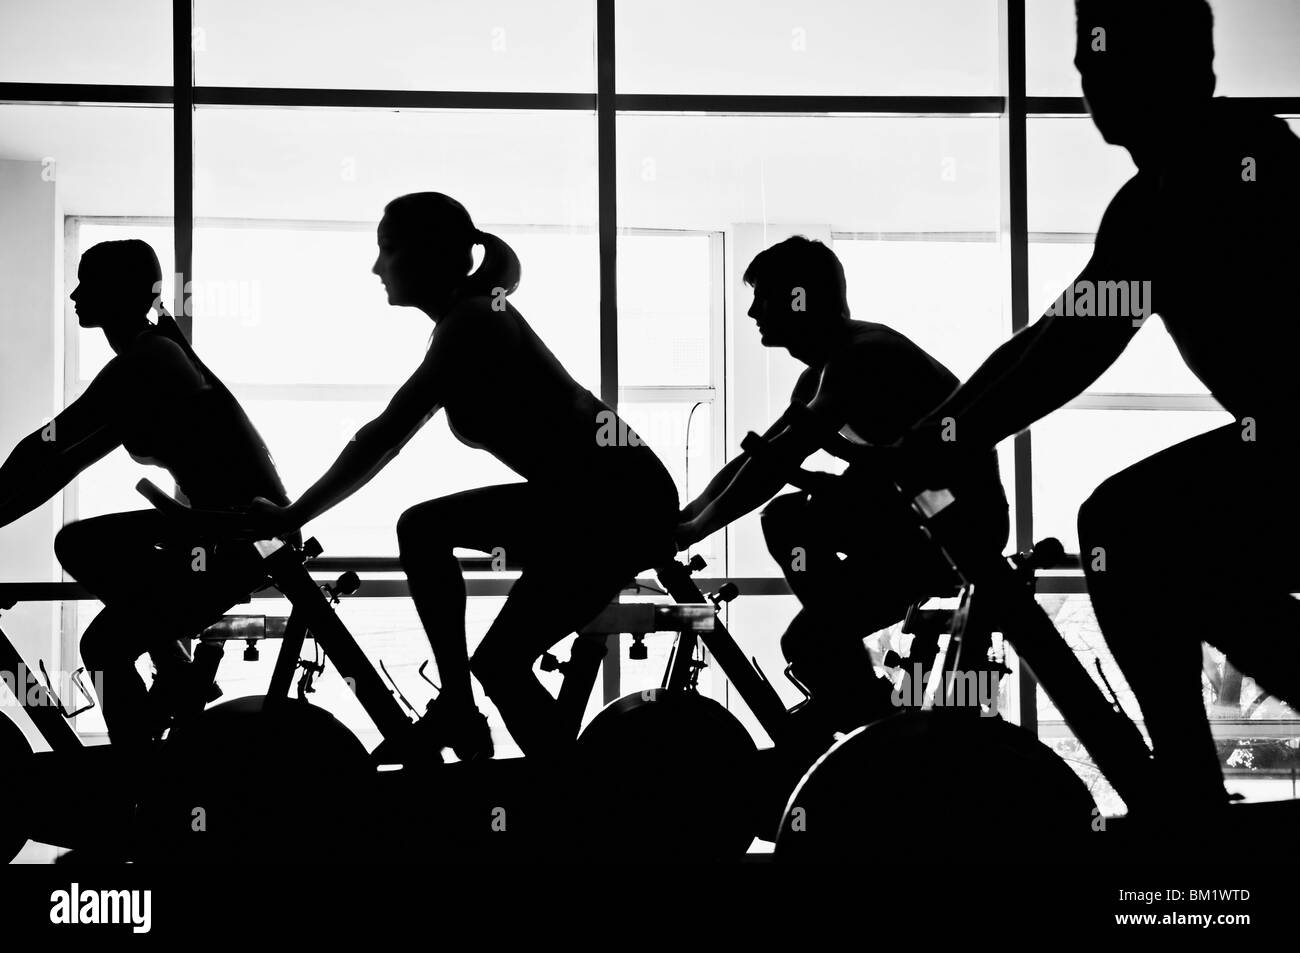 Silhouette of four people working out on exercise bikes in a gym - Stock Image